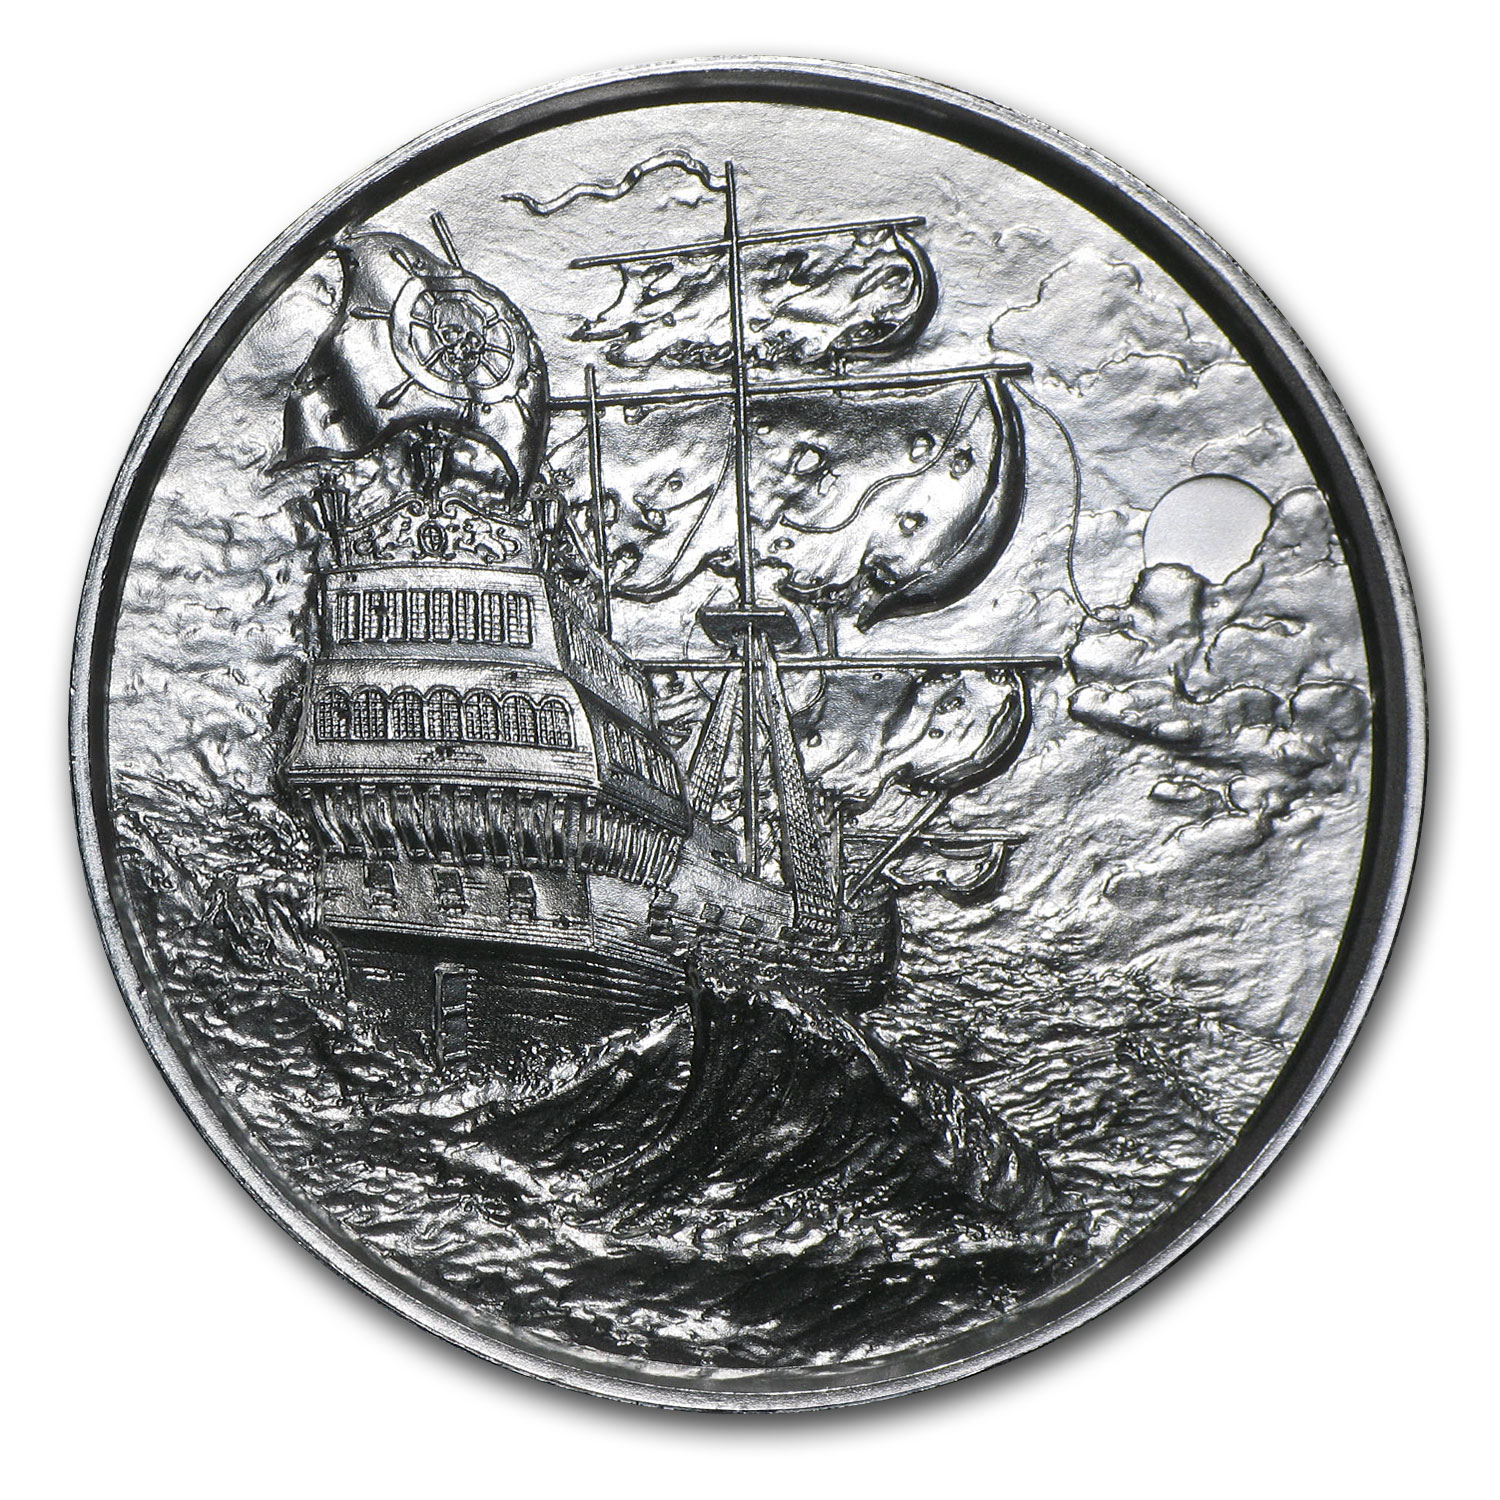 2 oz Silver Round - The Privateer (Ultra High Relief)